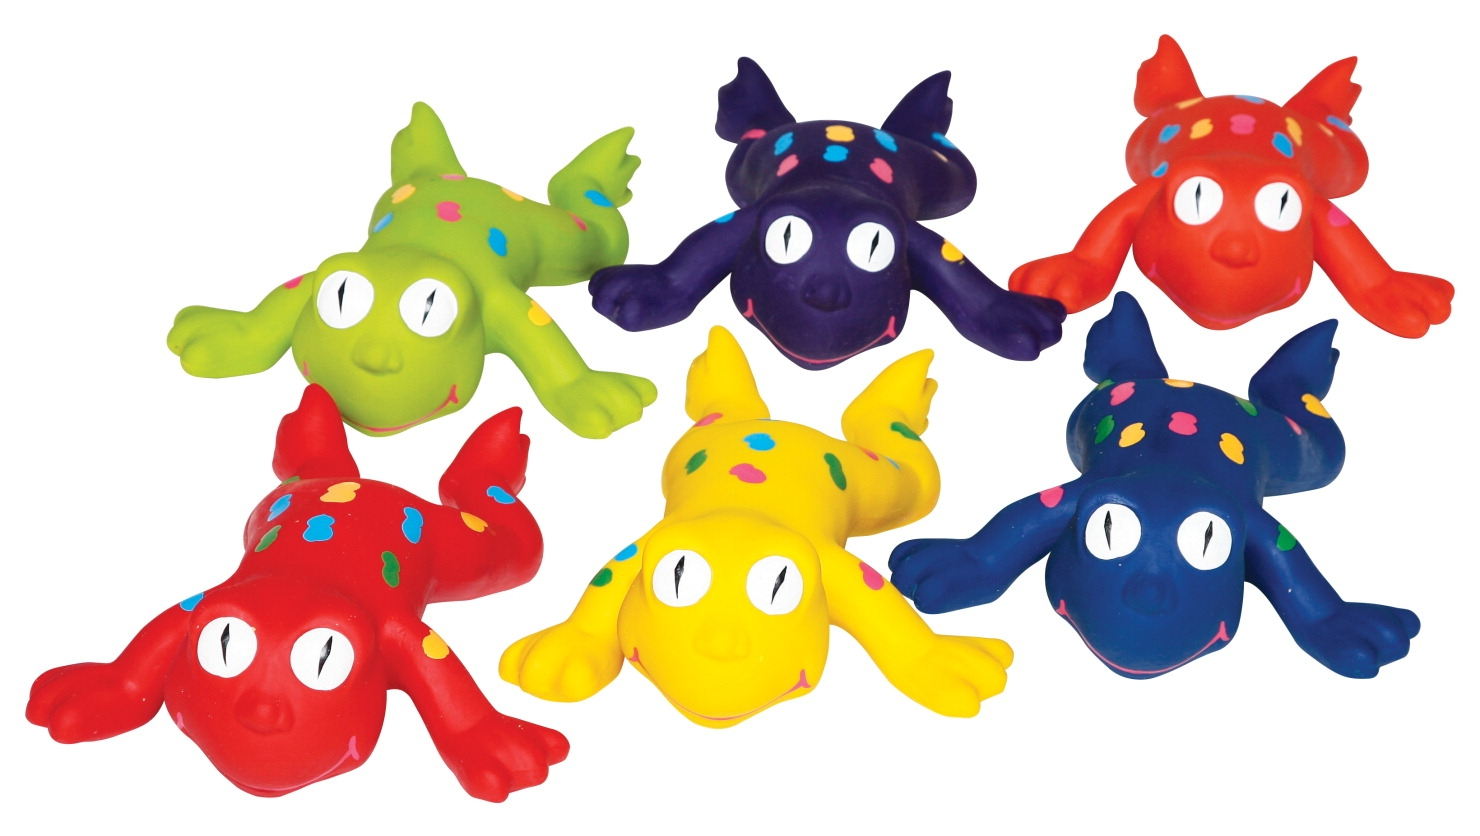 Sportime Rubberlike Frogs; Set Of 6 - 1449441 - Bowling Outdoor Activities Bowling 1449441